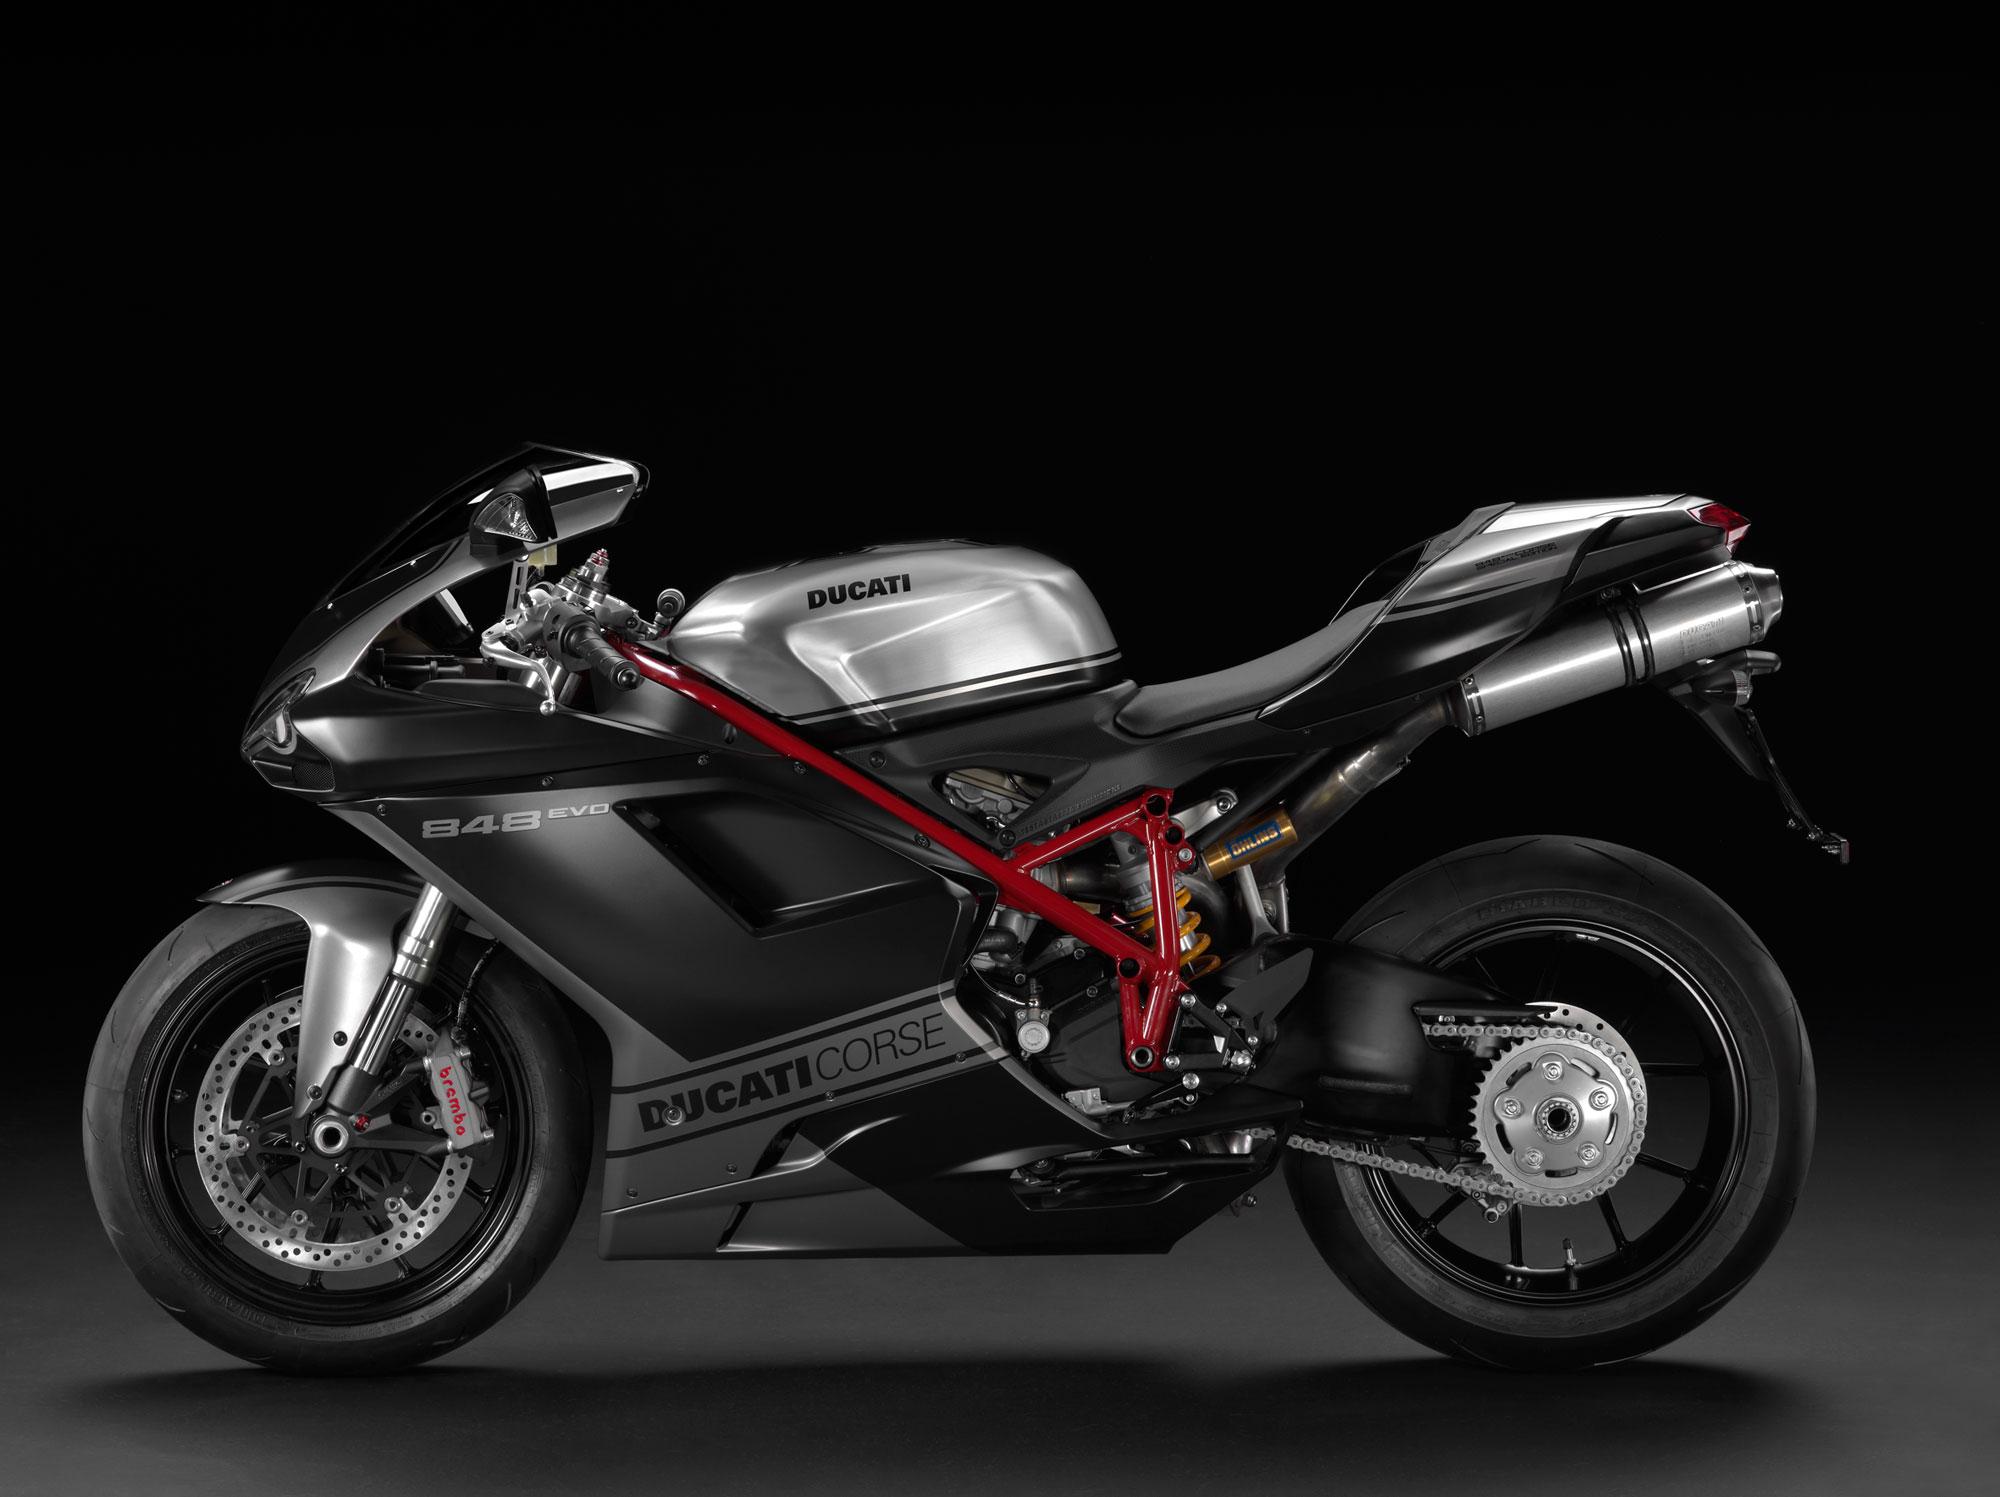 2013 Ducati Superbike 848 EVO Corse SE Review